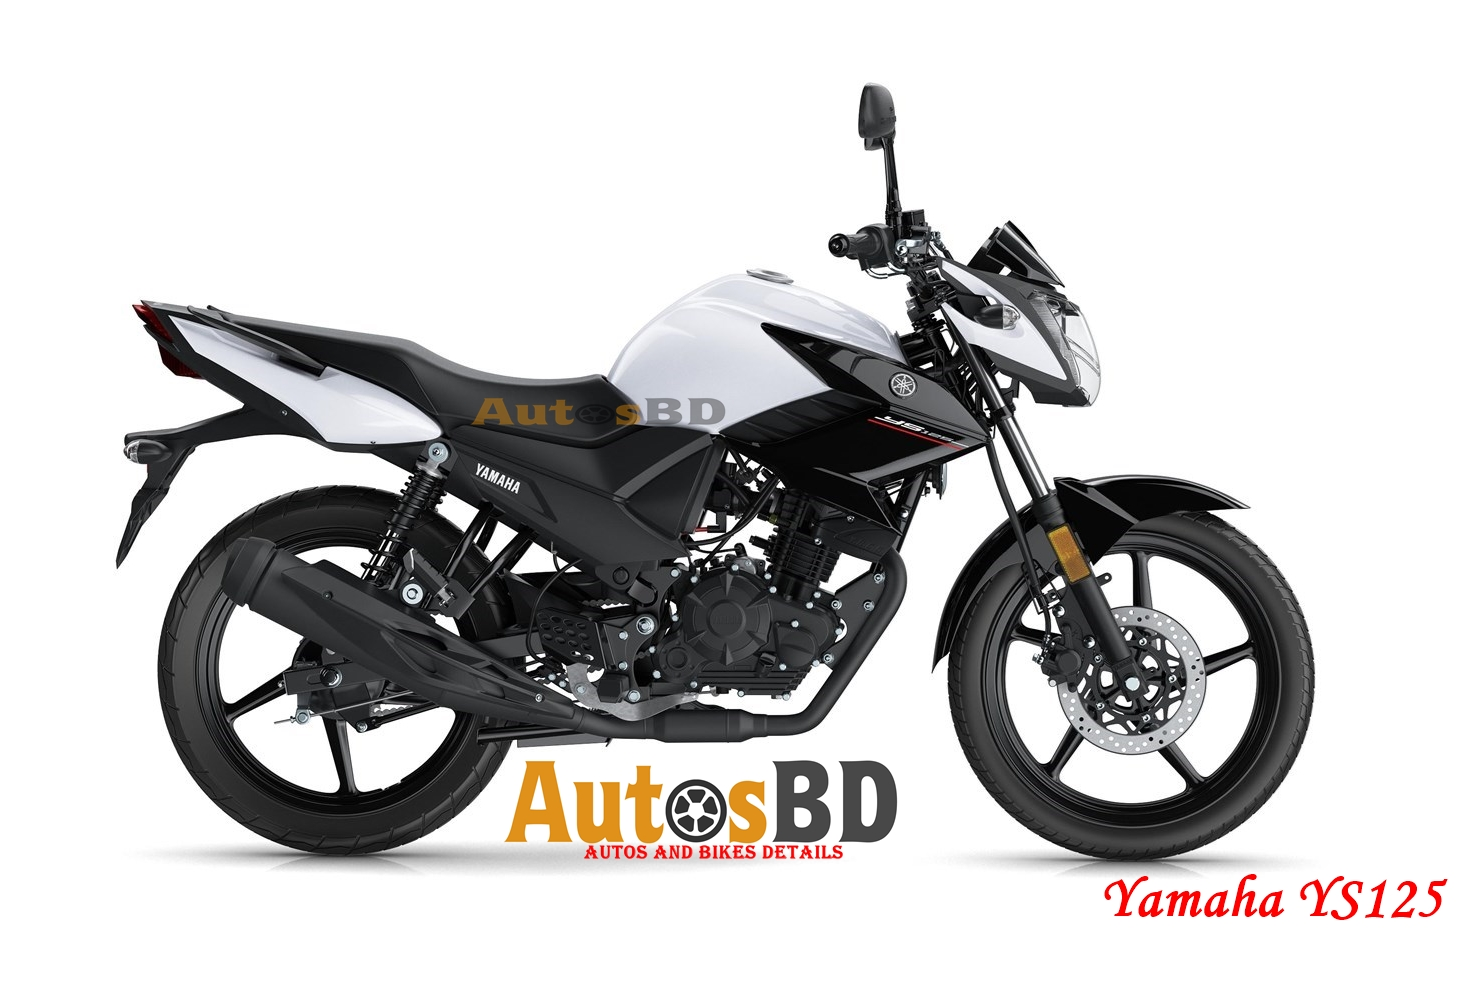 Yamaha YS125 Motorcycle Price in Bangladesh